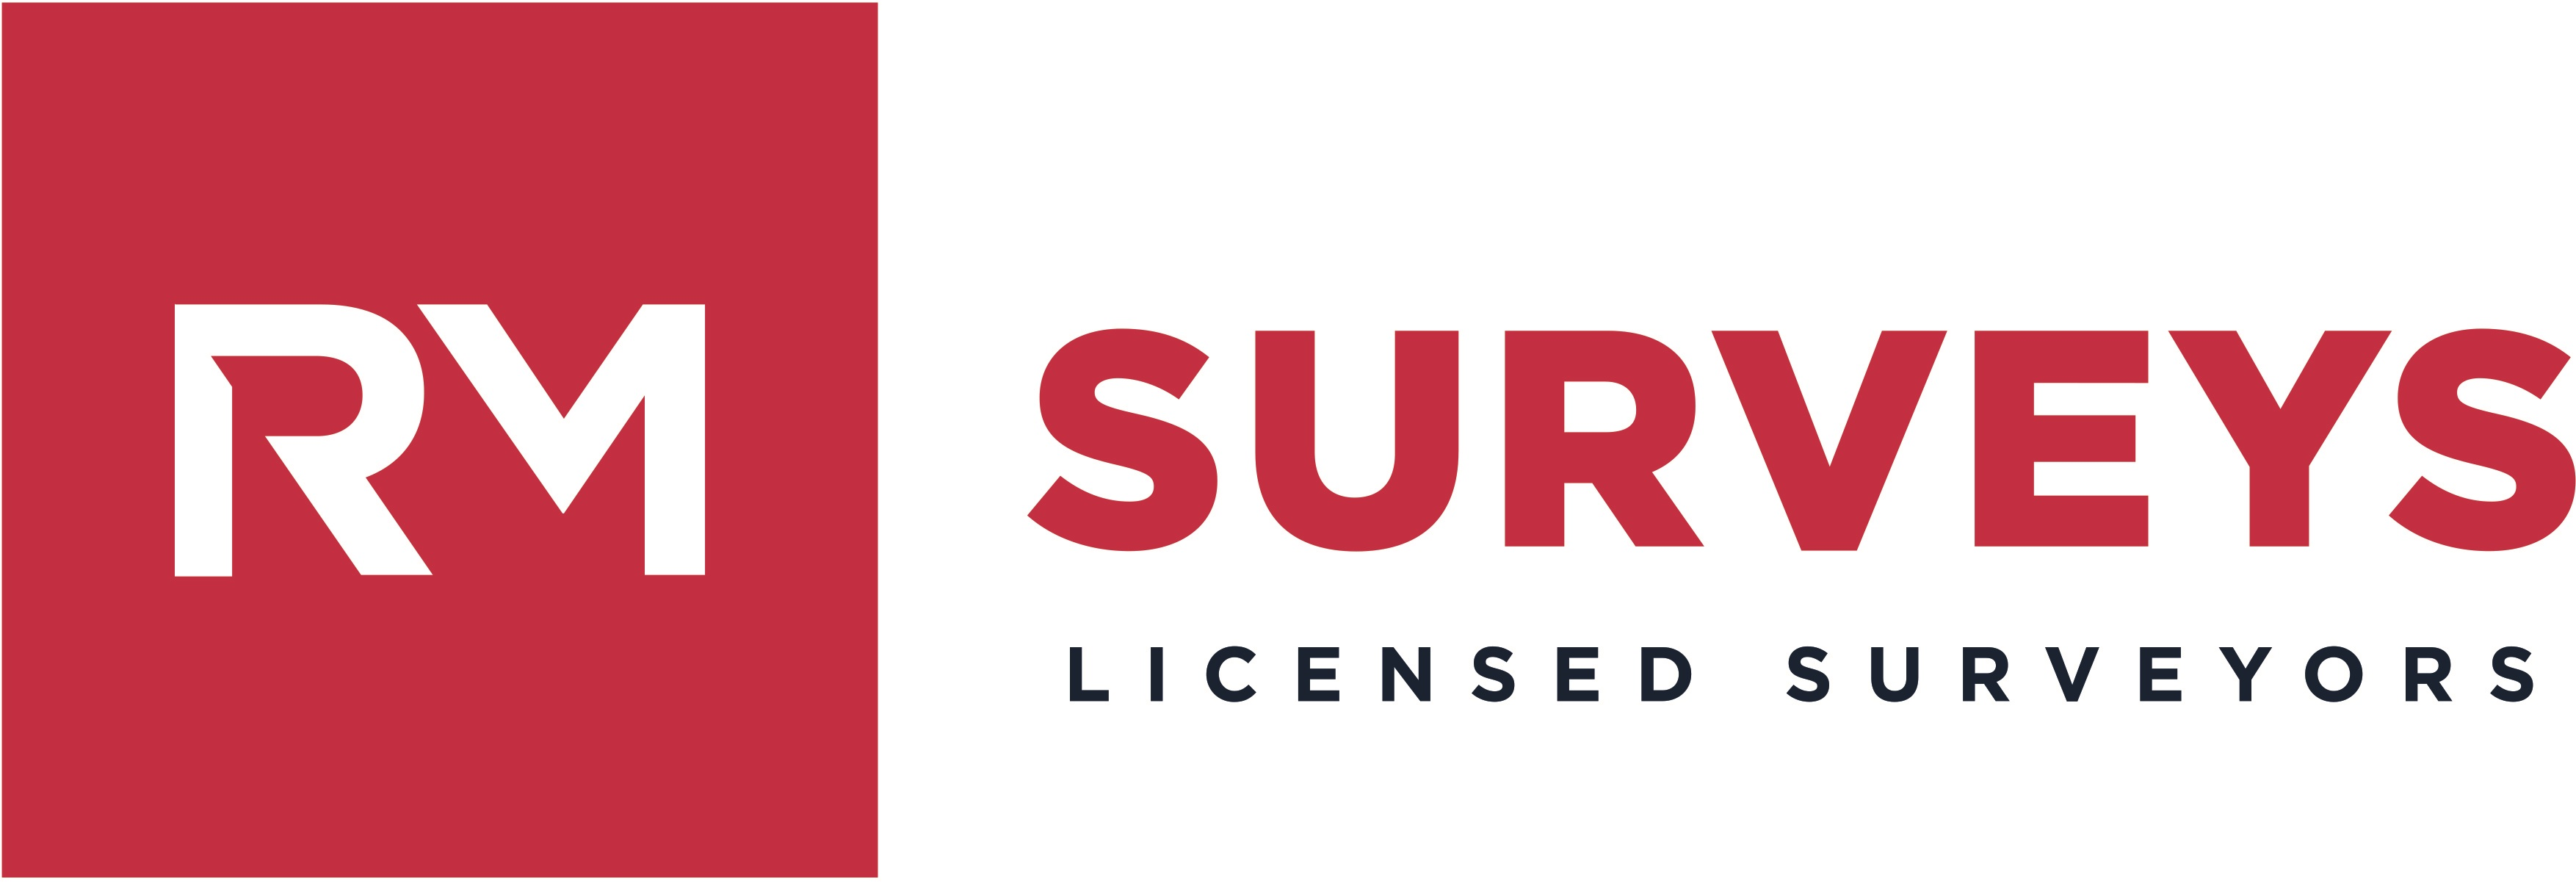 RM Surveys Licenced Surveyors